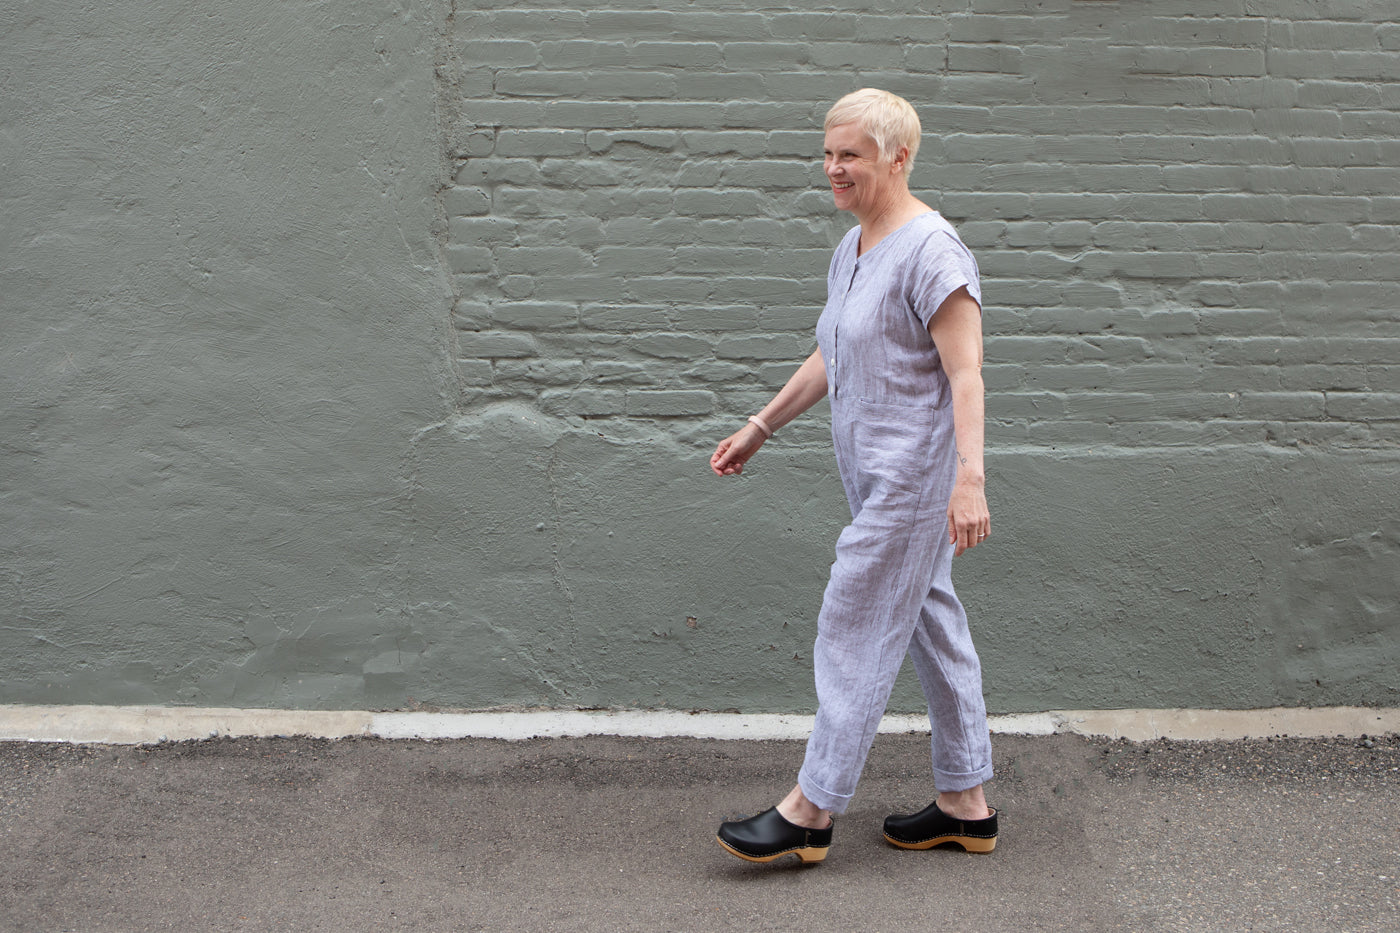 Christina smiles, walking down the sidewalk wearing her hand-made linen jumpsuit from Sonya Philip's The Act of Sewing book.